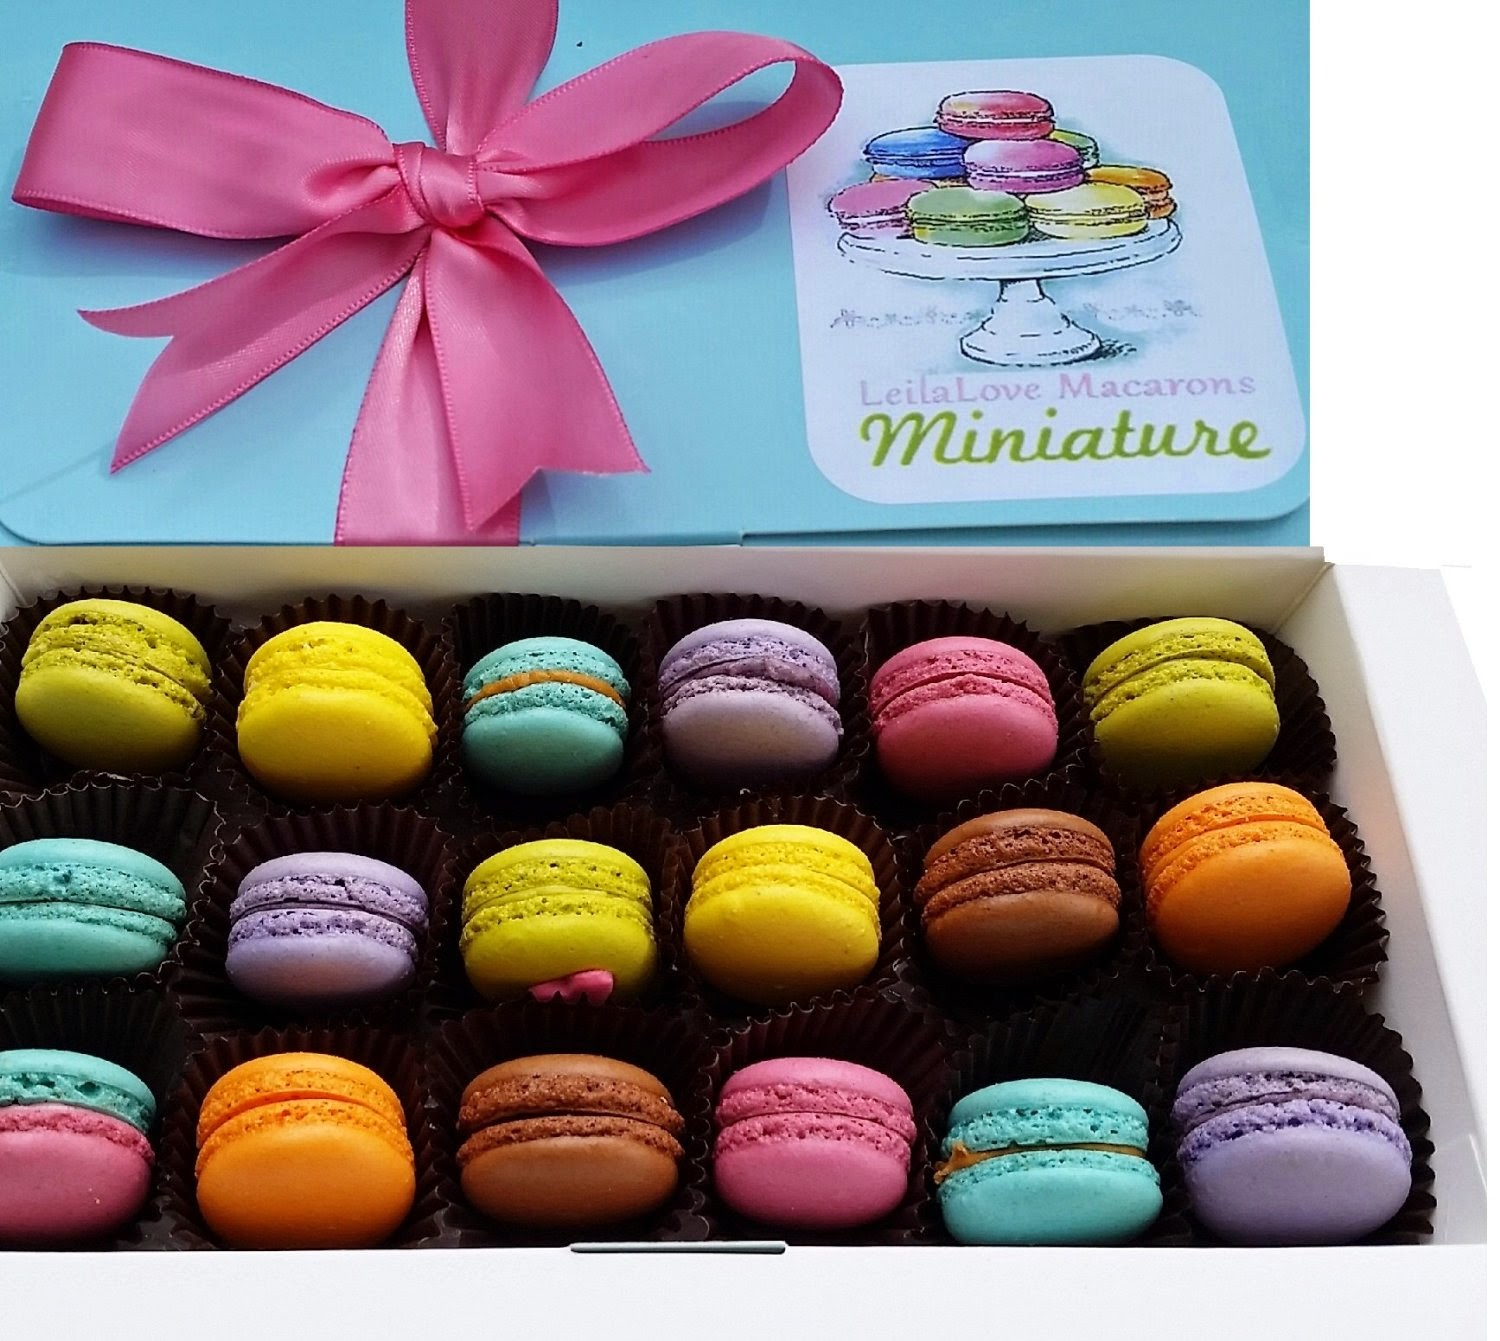 Perfect-Hostess-Gifts-LeilaLove-Macarons